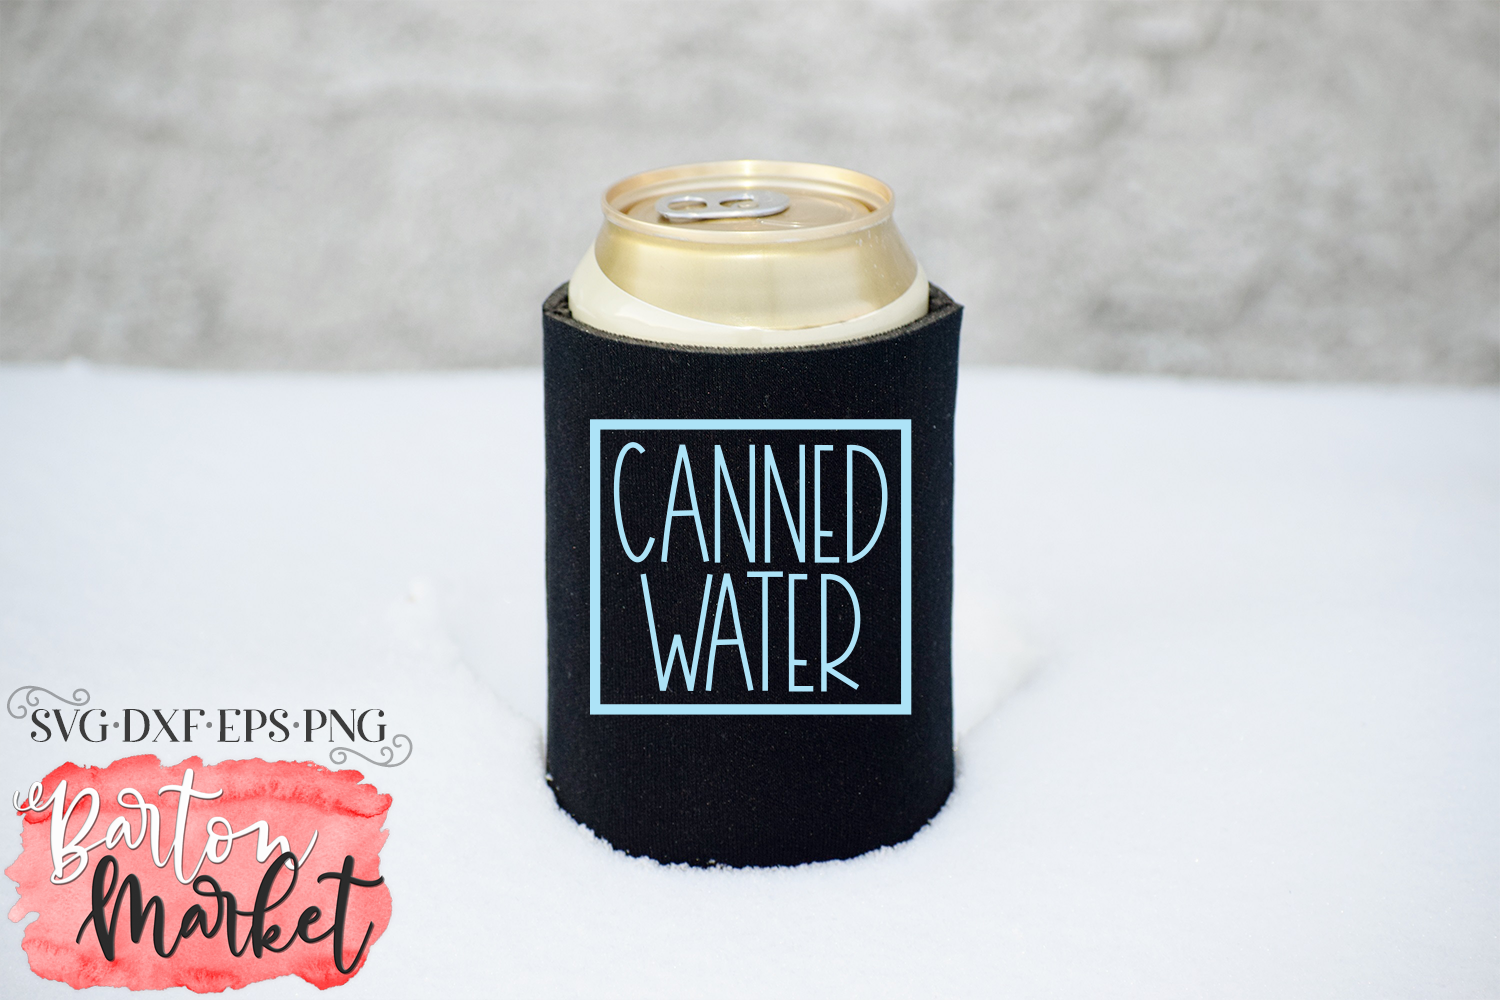 Canned Water SVG DXF EPS PNG example image 2